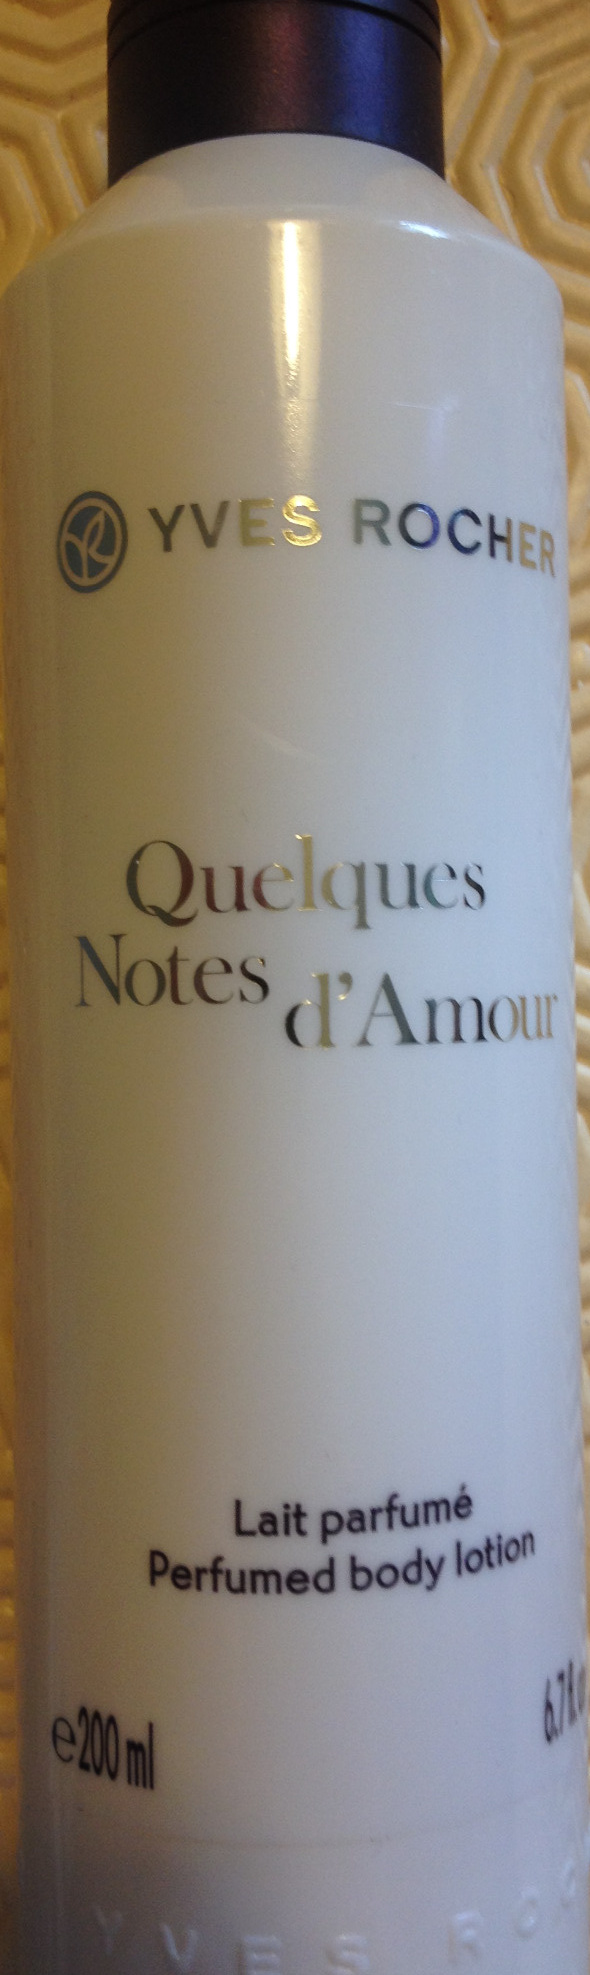 Quelques notes d'amour - Product - fr